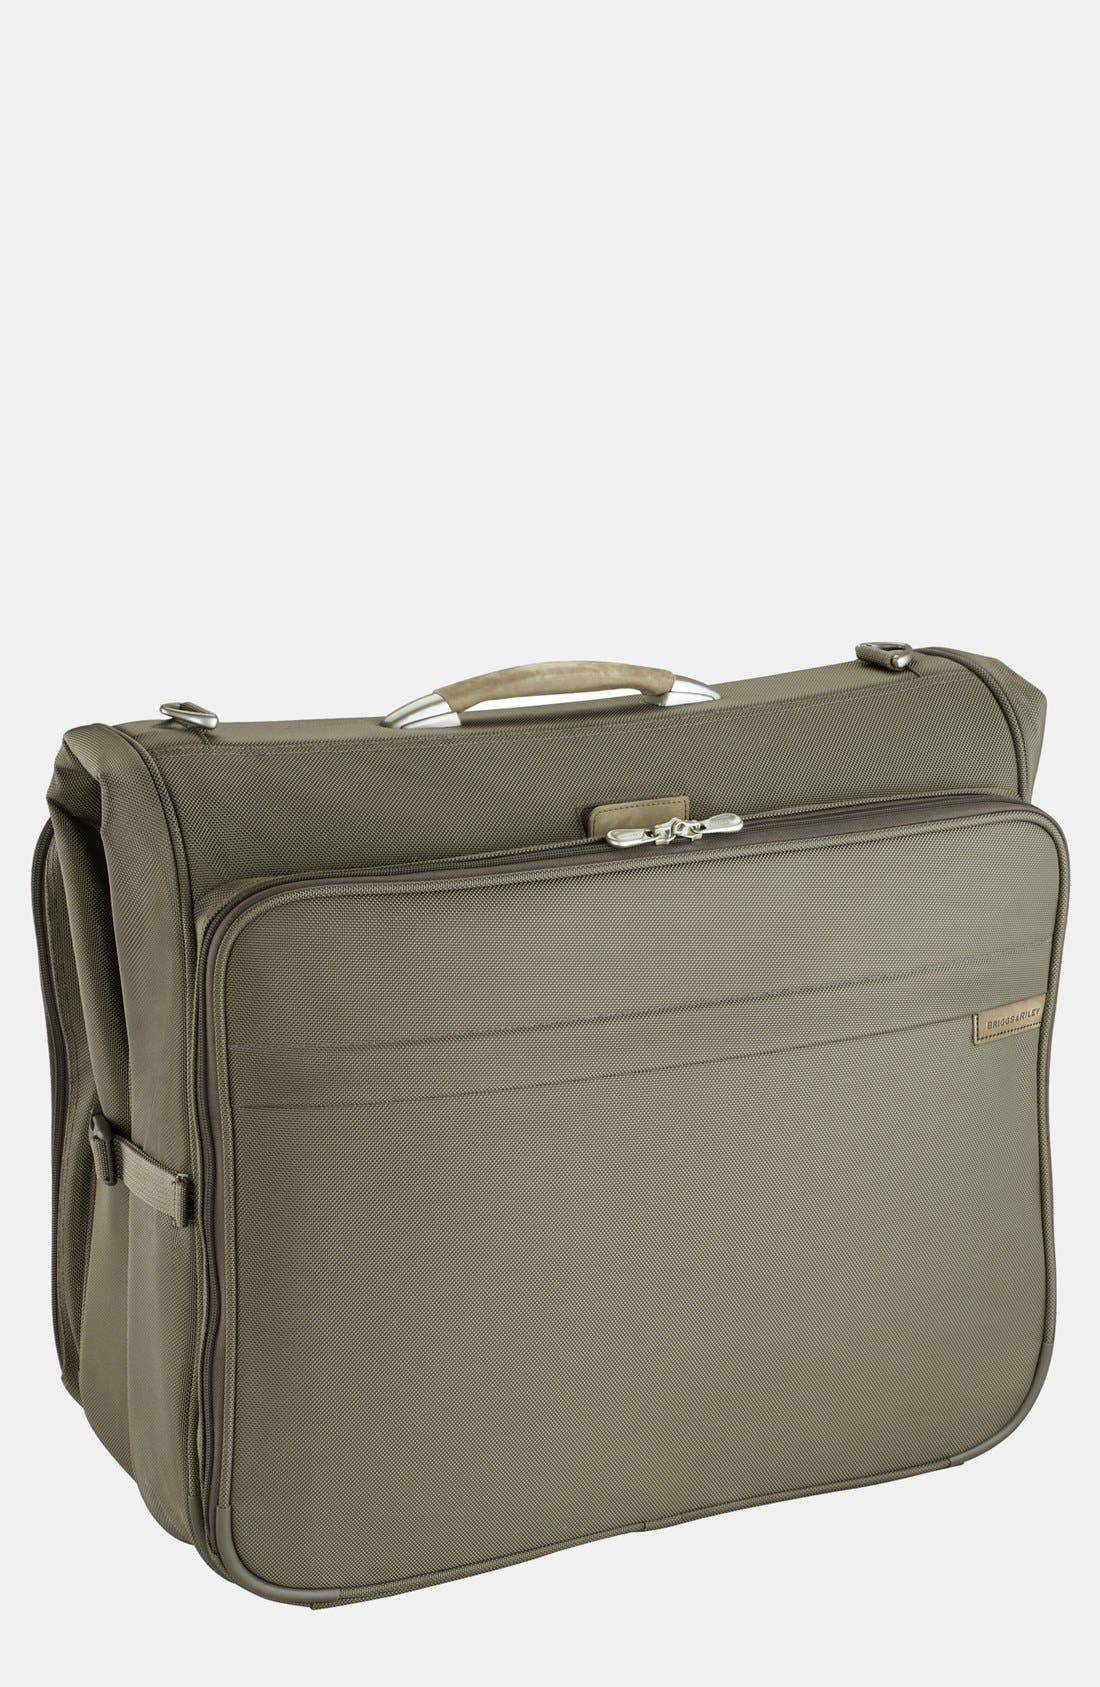 Main Image - Briggs & Riley Baseline 22-Inch Deluxe Garment Bag